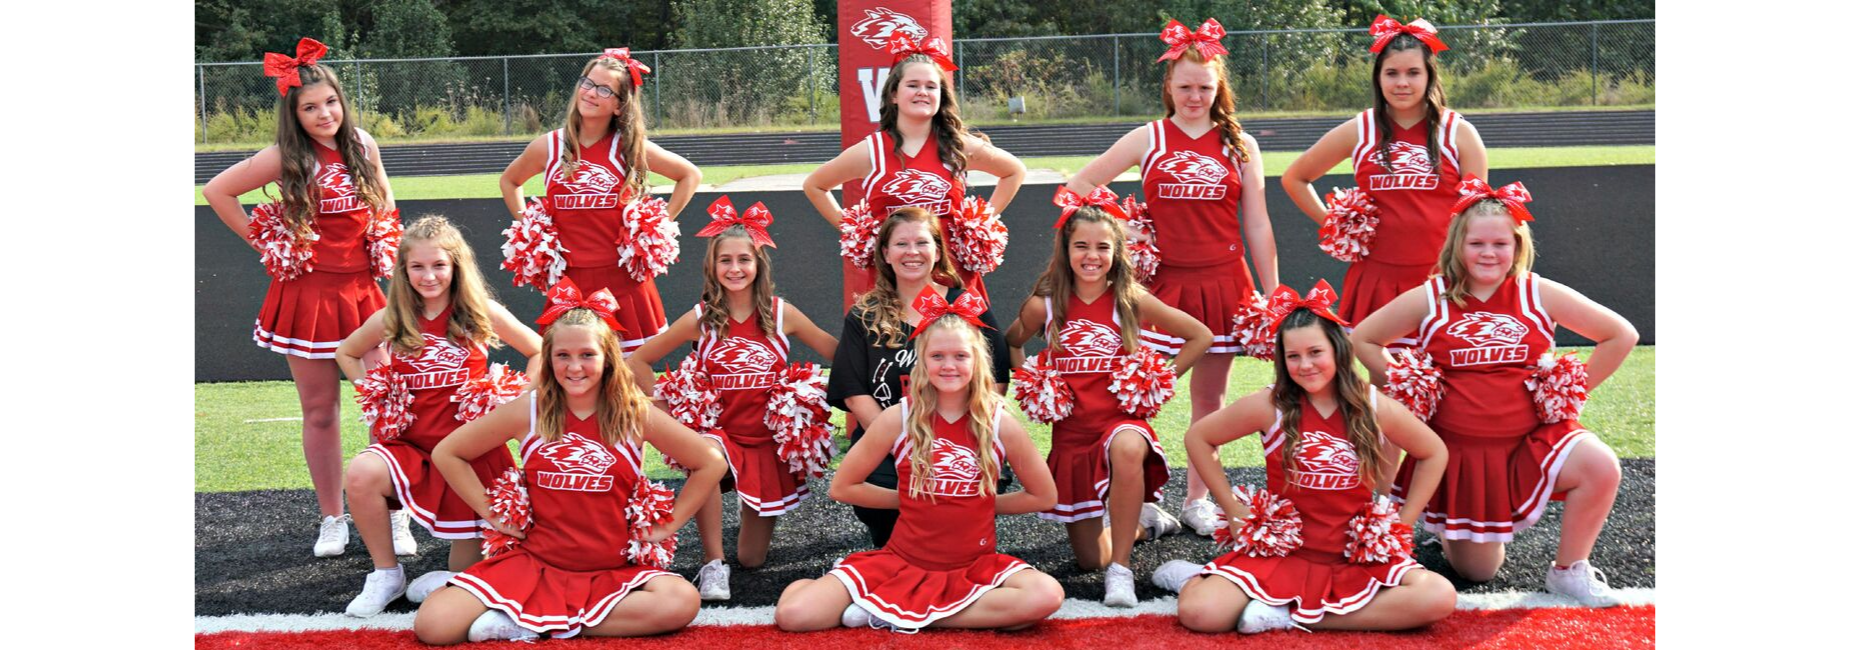 RSMS cheerleaders